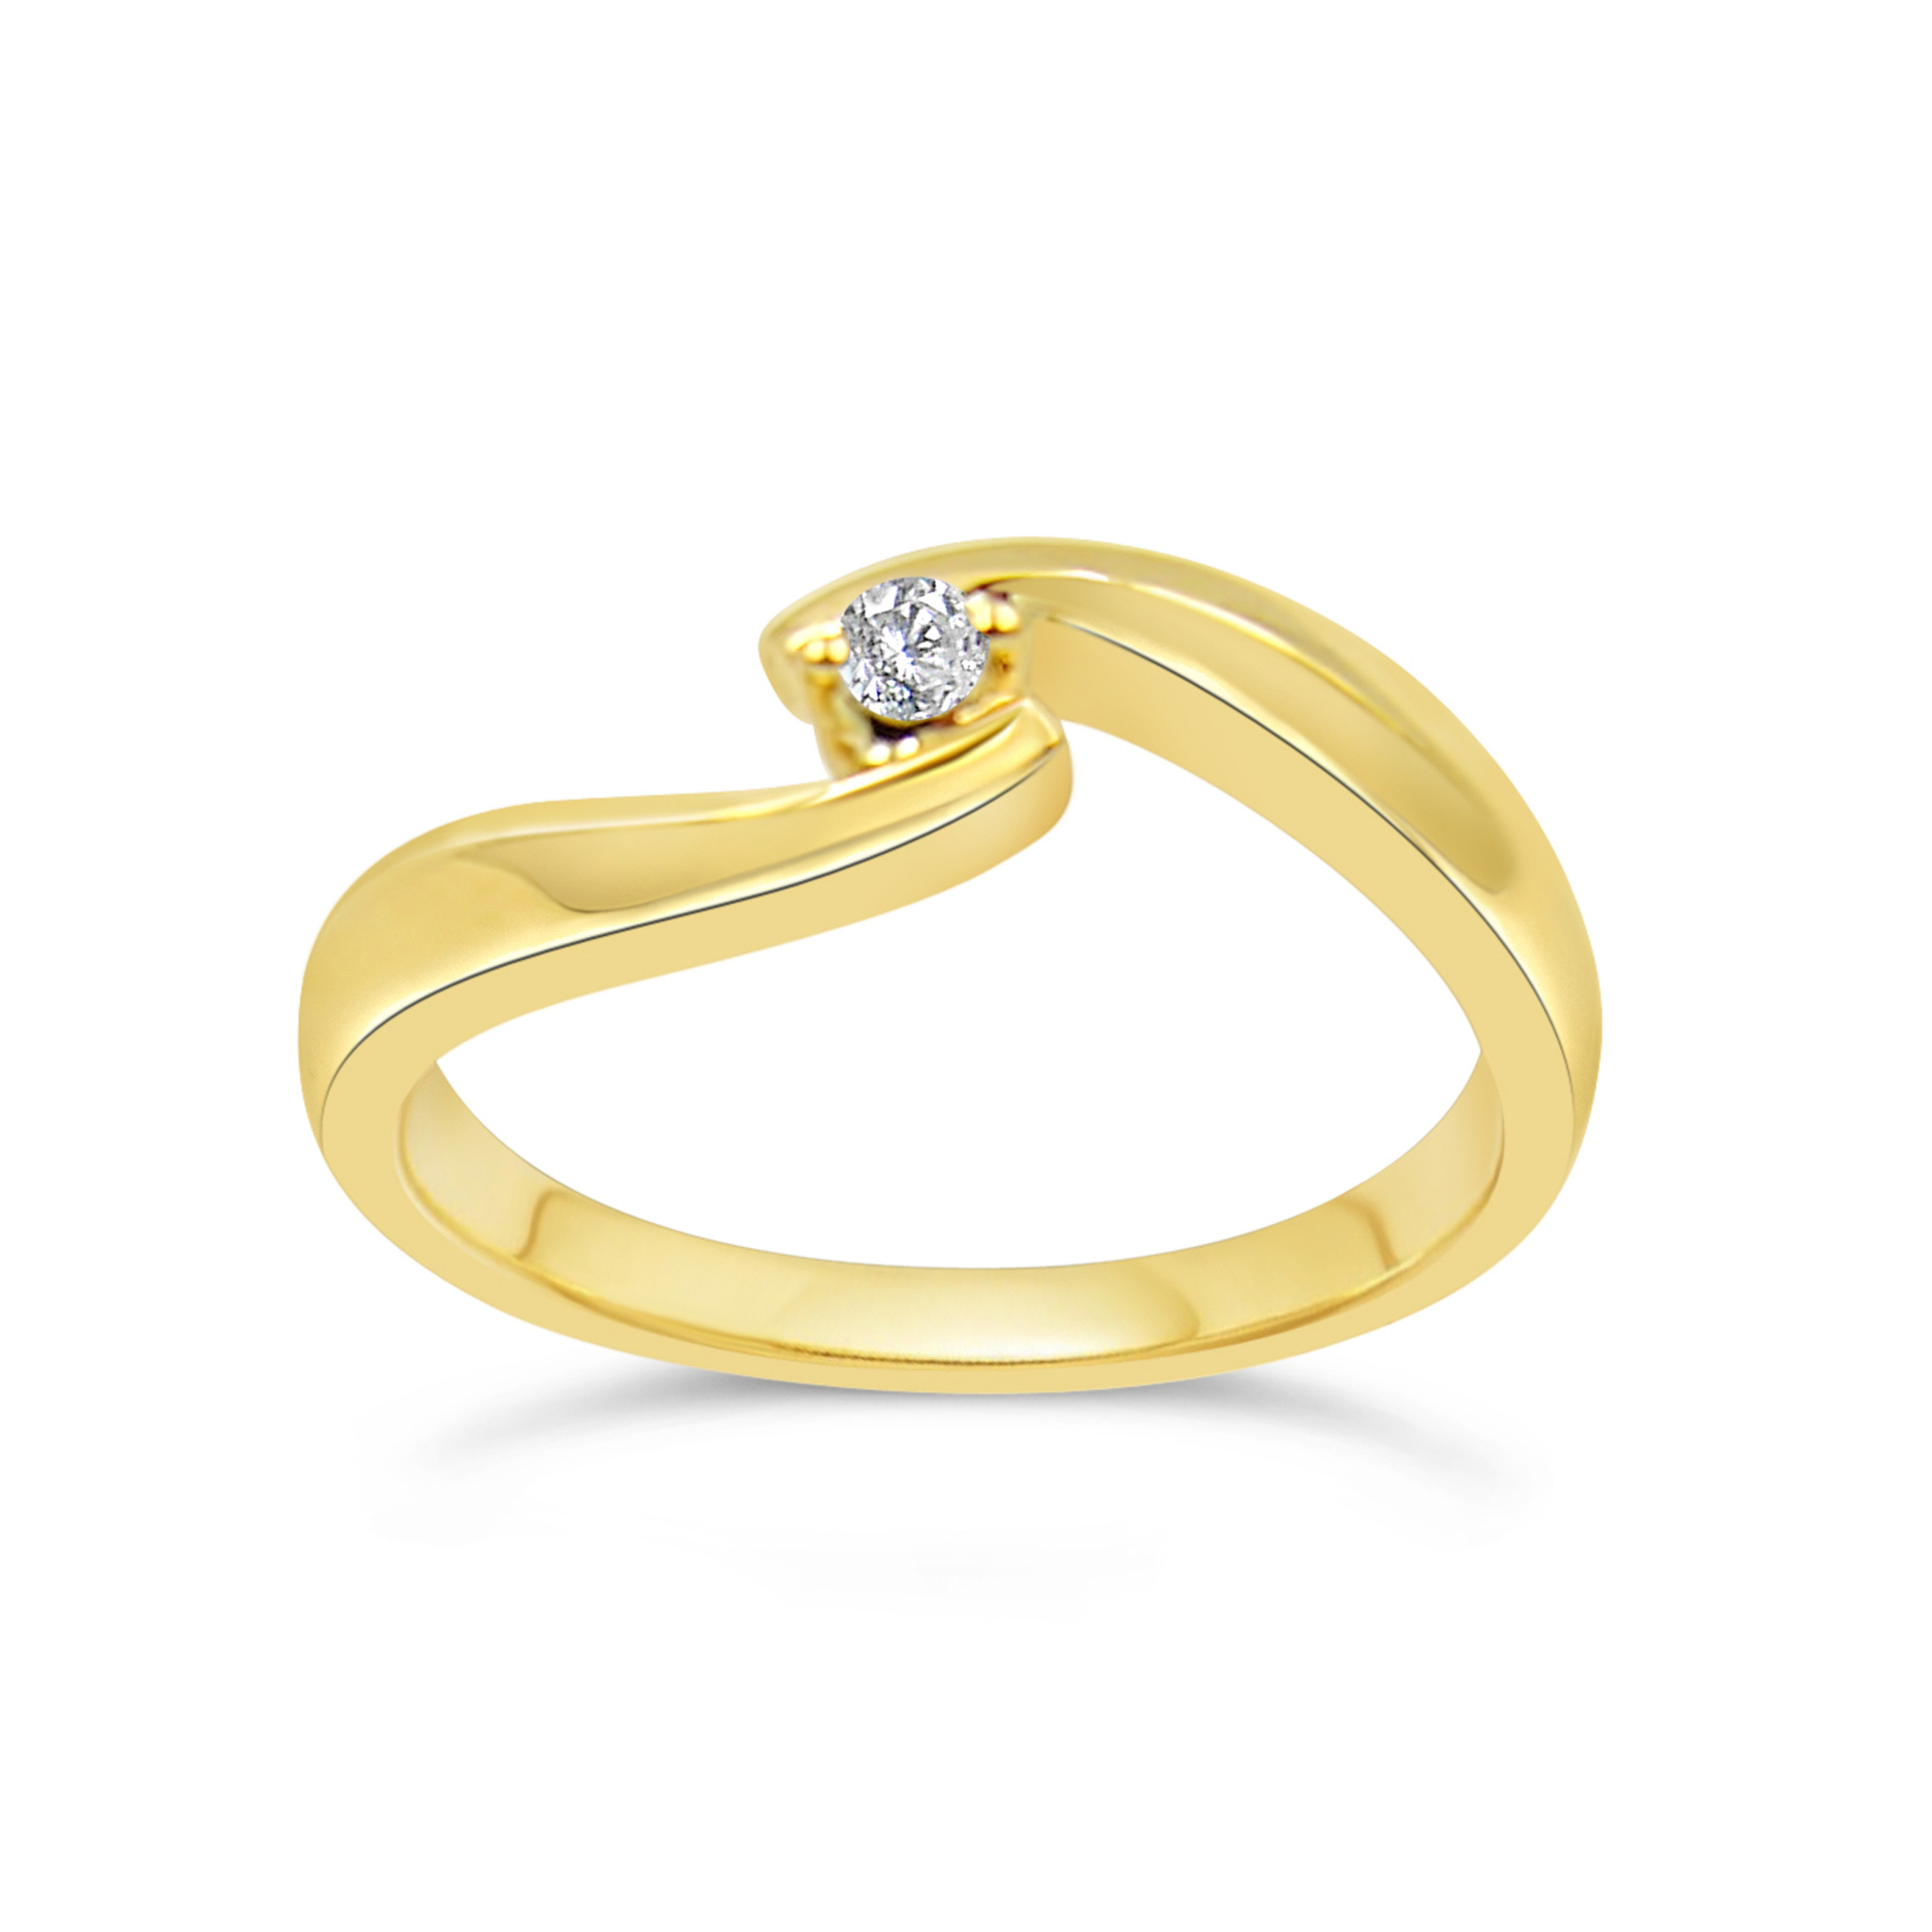 18kt yellow gold engagement ring with 0.04 ct diamond